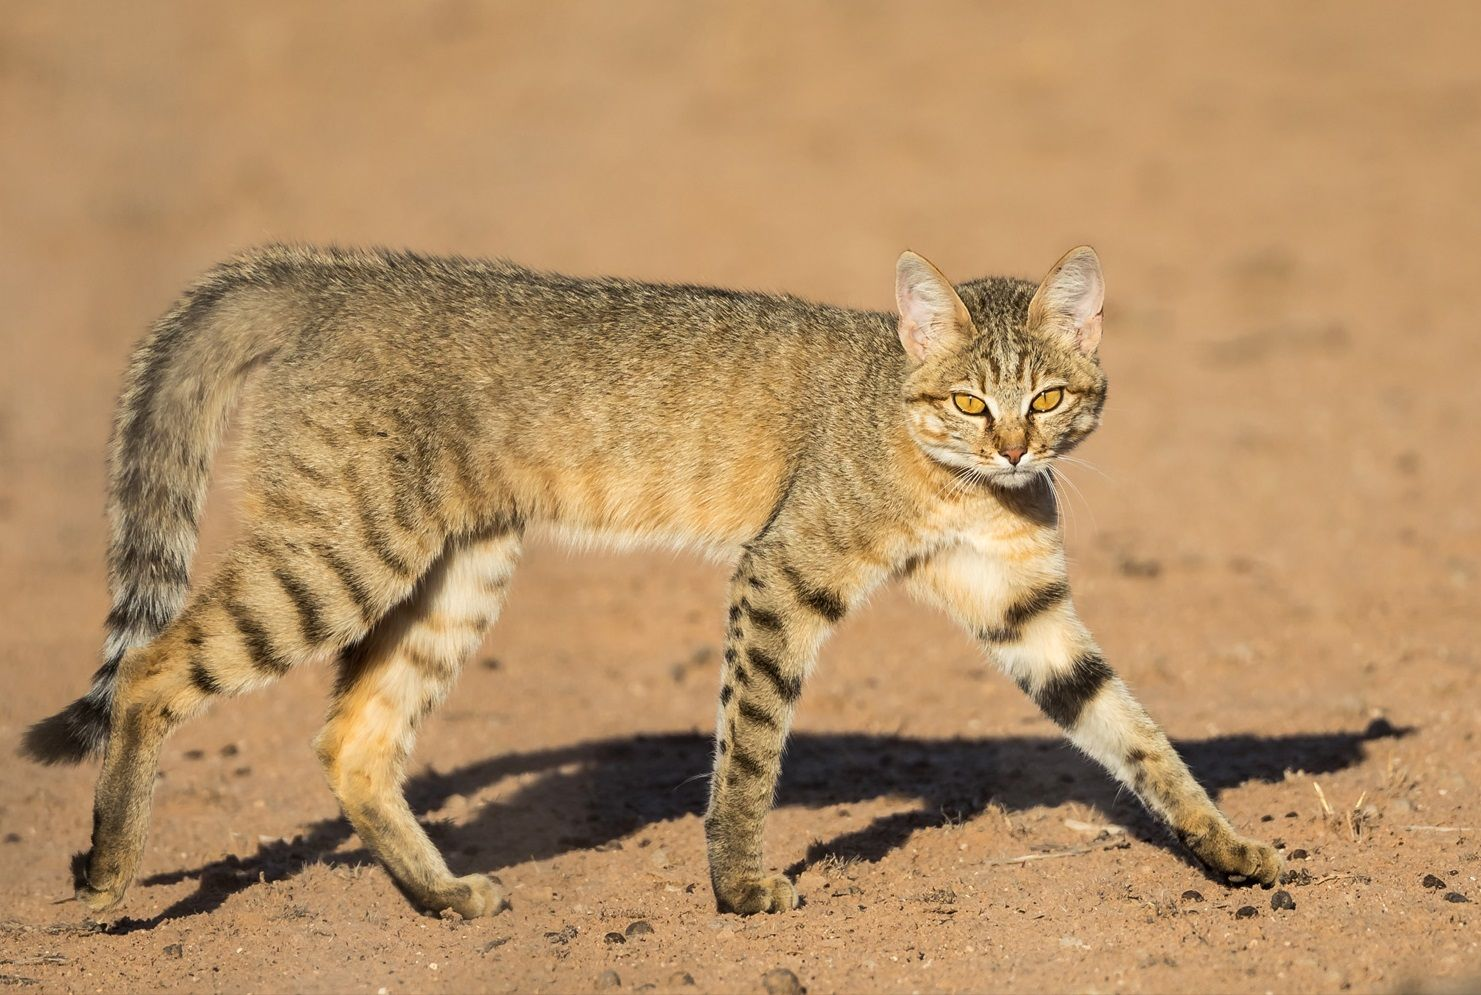 An African Wild Cat Felis Lybica In Kgalagadi Transfrontier Park